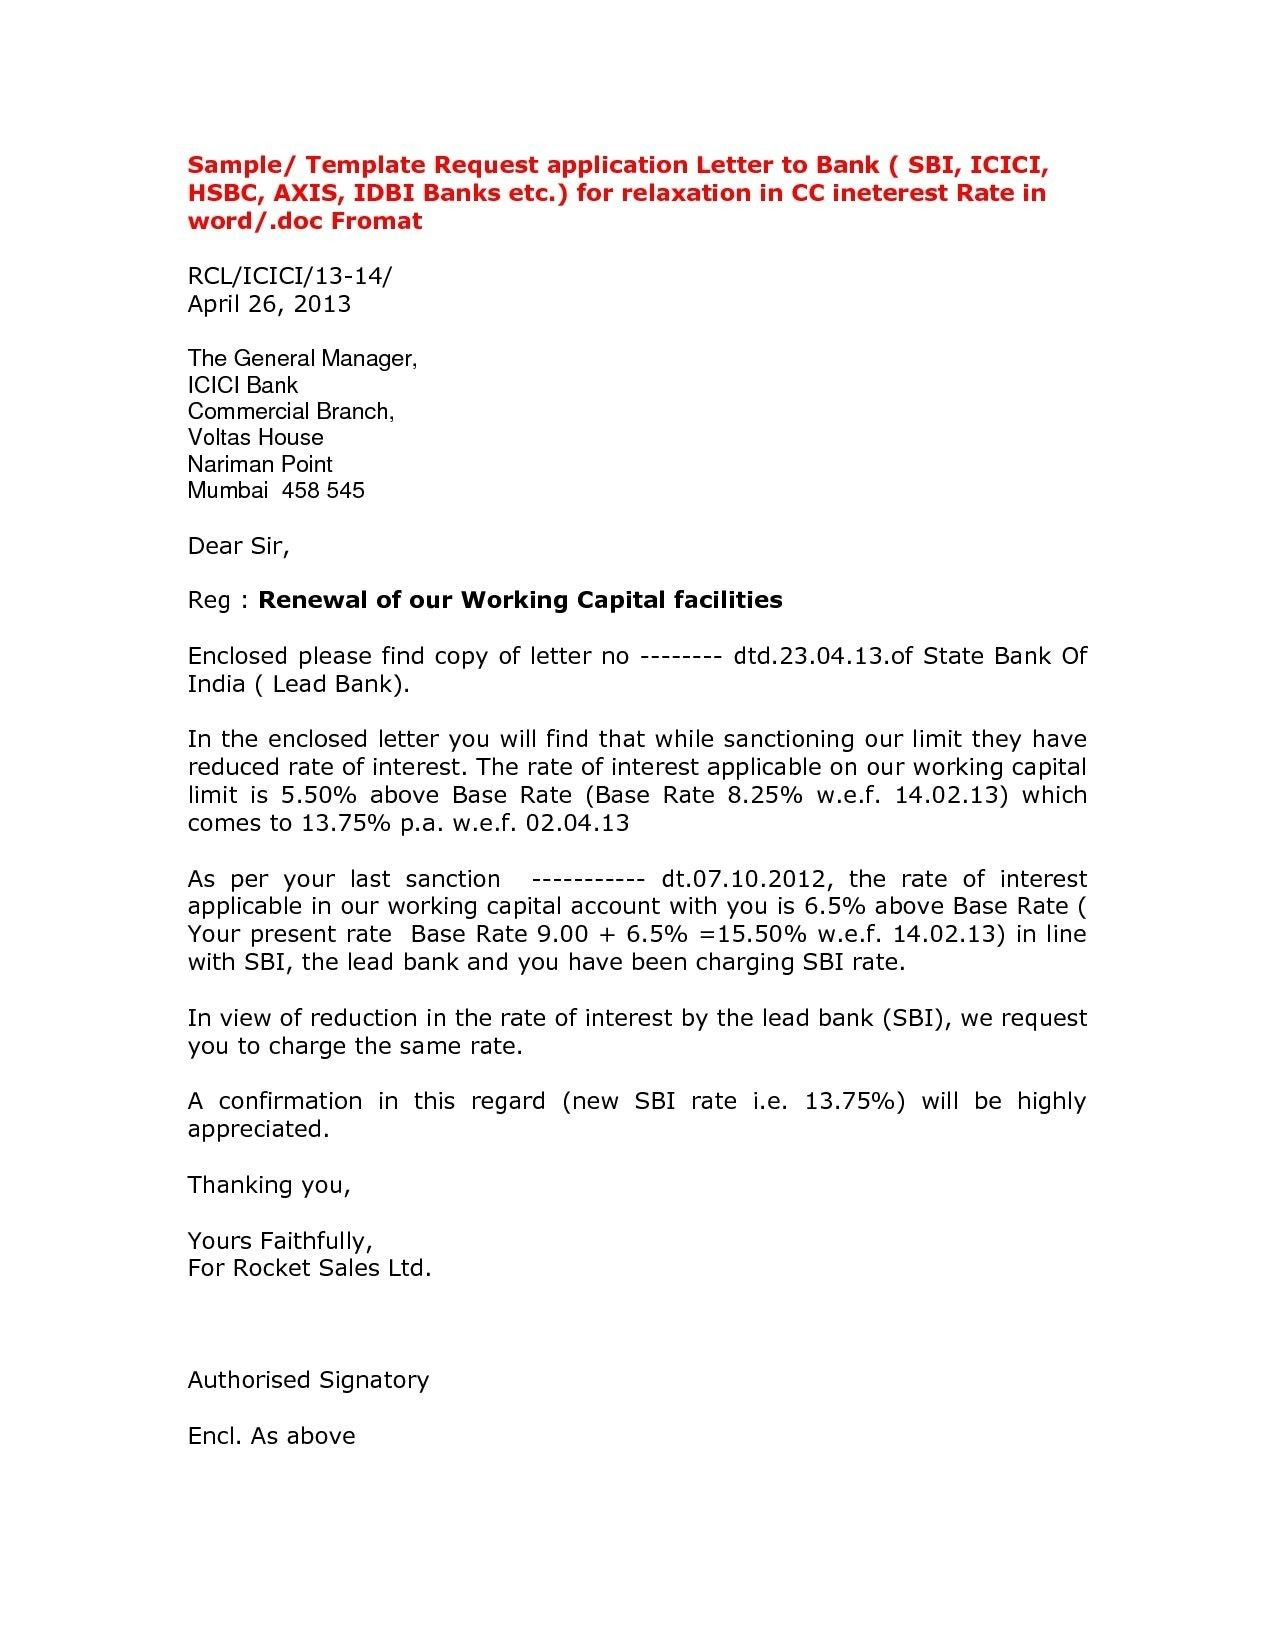 Letter Format For Cc Renewal Why Is Letter Format For Cc Renewal Considered Underrated Business Letter Template Formal Business Letter Letter Templates